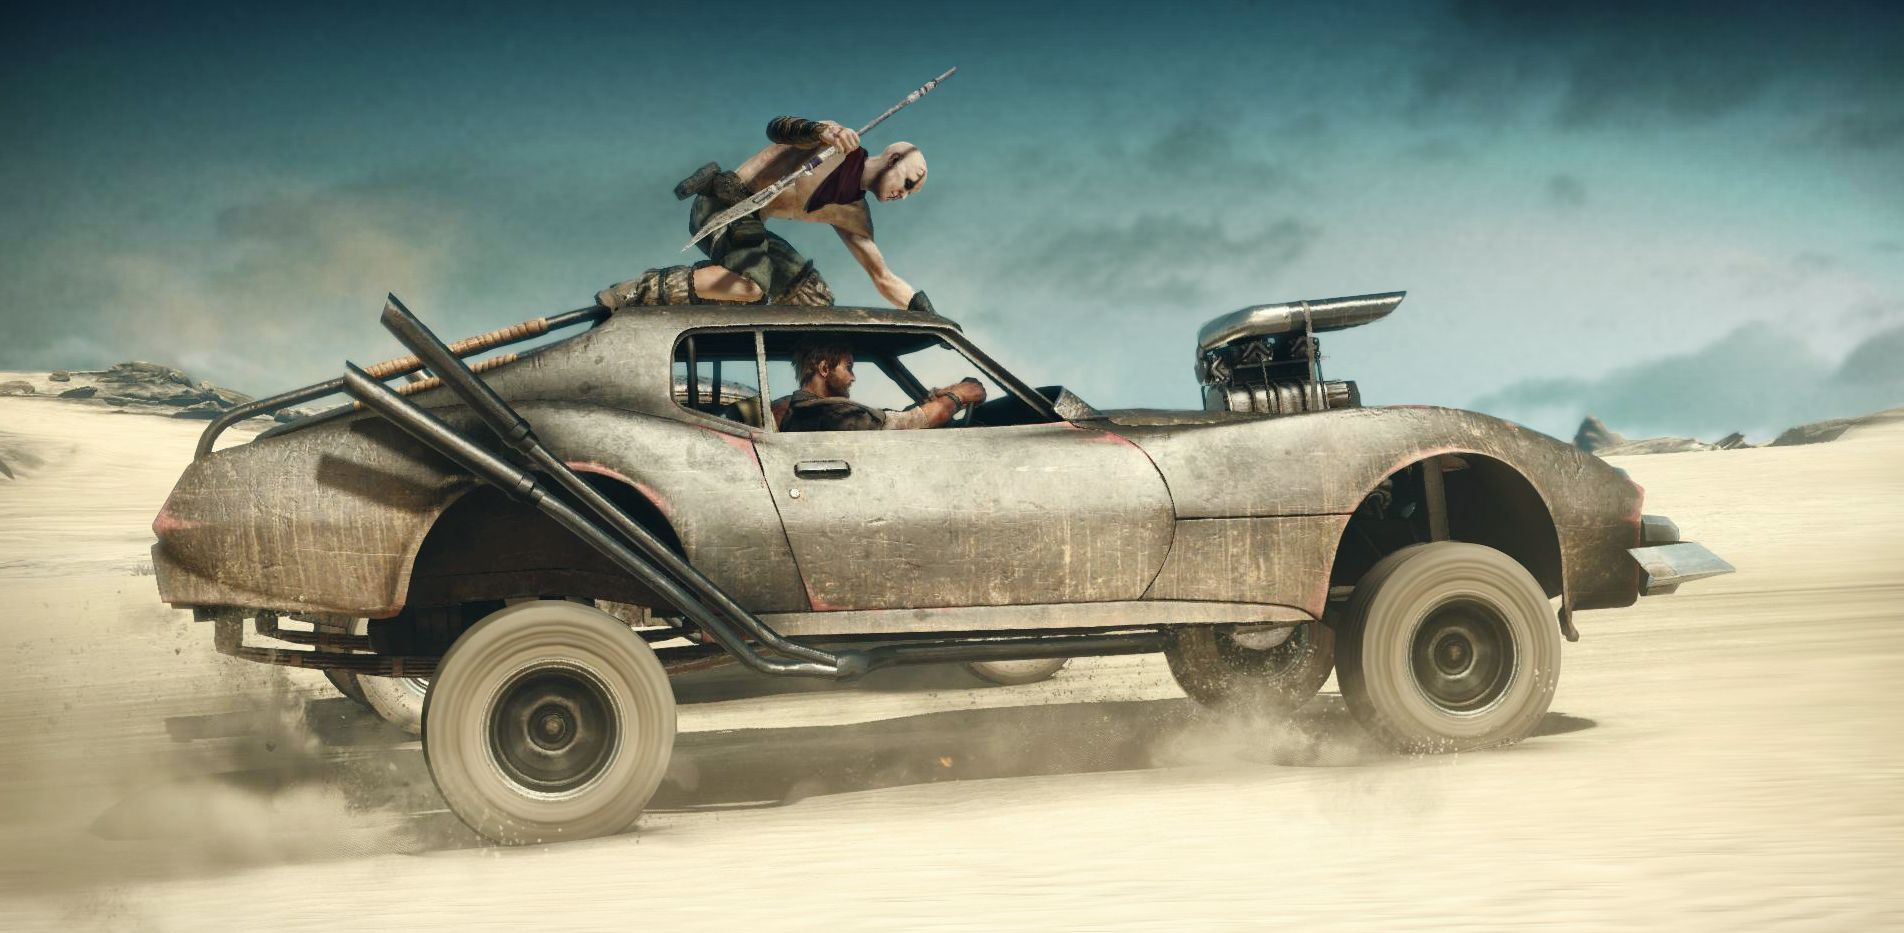 Jumping on top of car - Mad Max: Fury Road